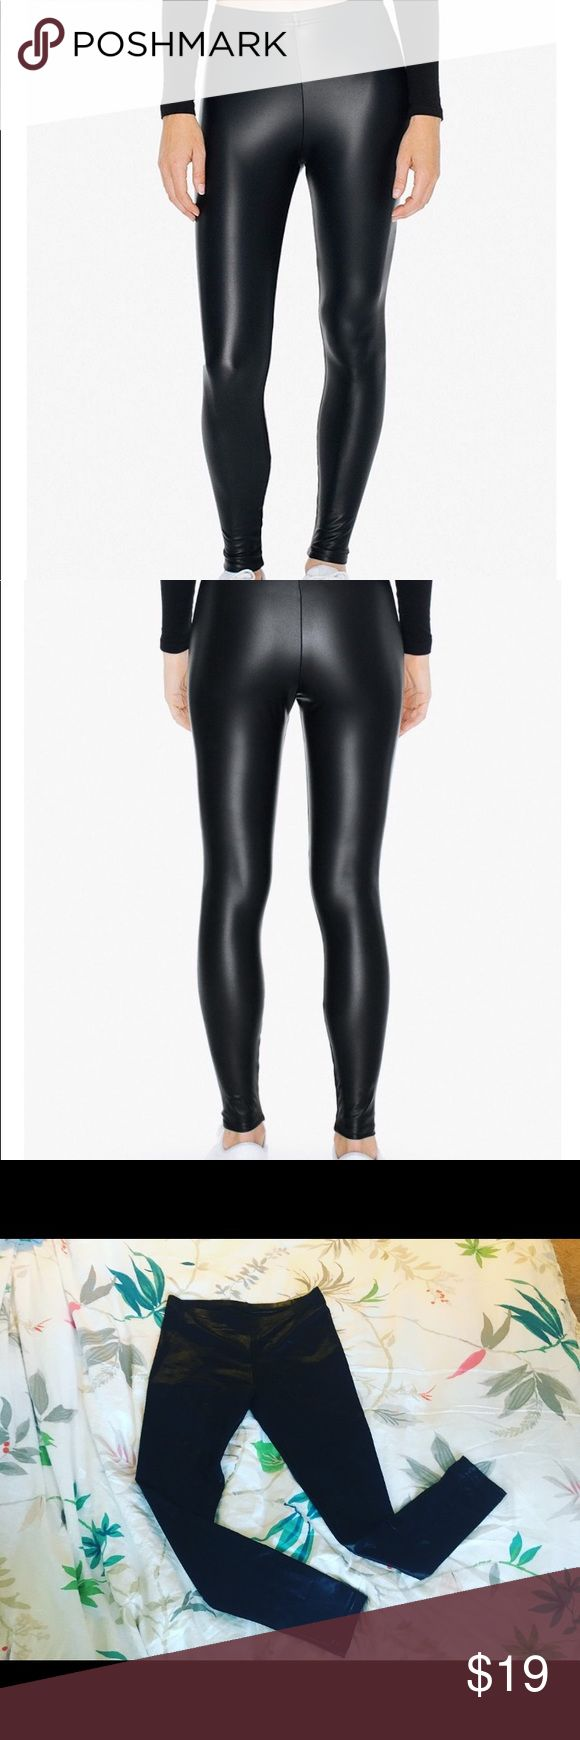 American Apparel Black Metallic Legging size L American Apparel Black Metallic Legging size L. No snags or tears excellent condition. Regular waist. American Apparel Pants Leggings